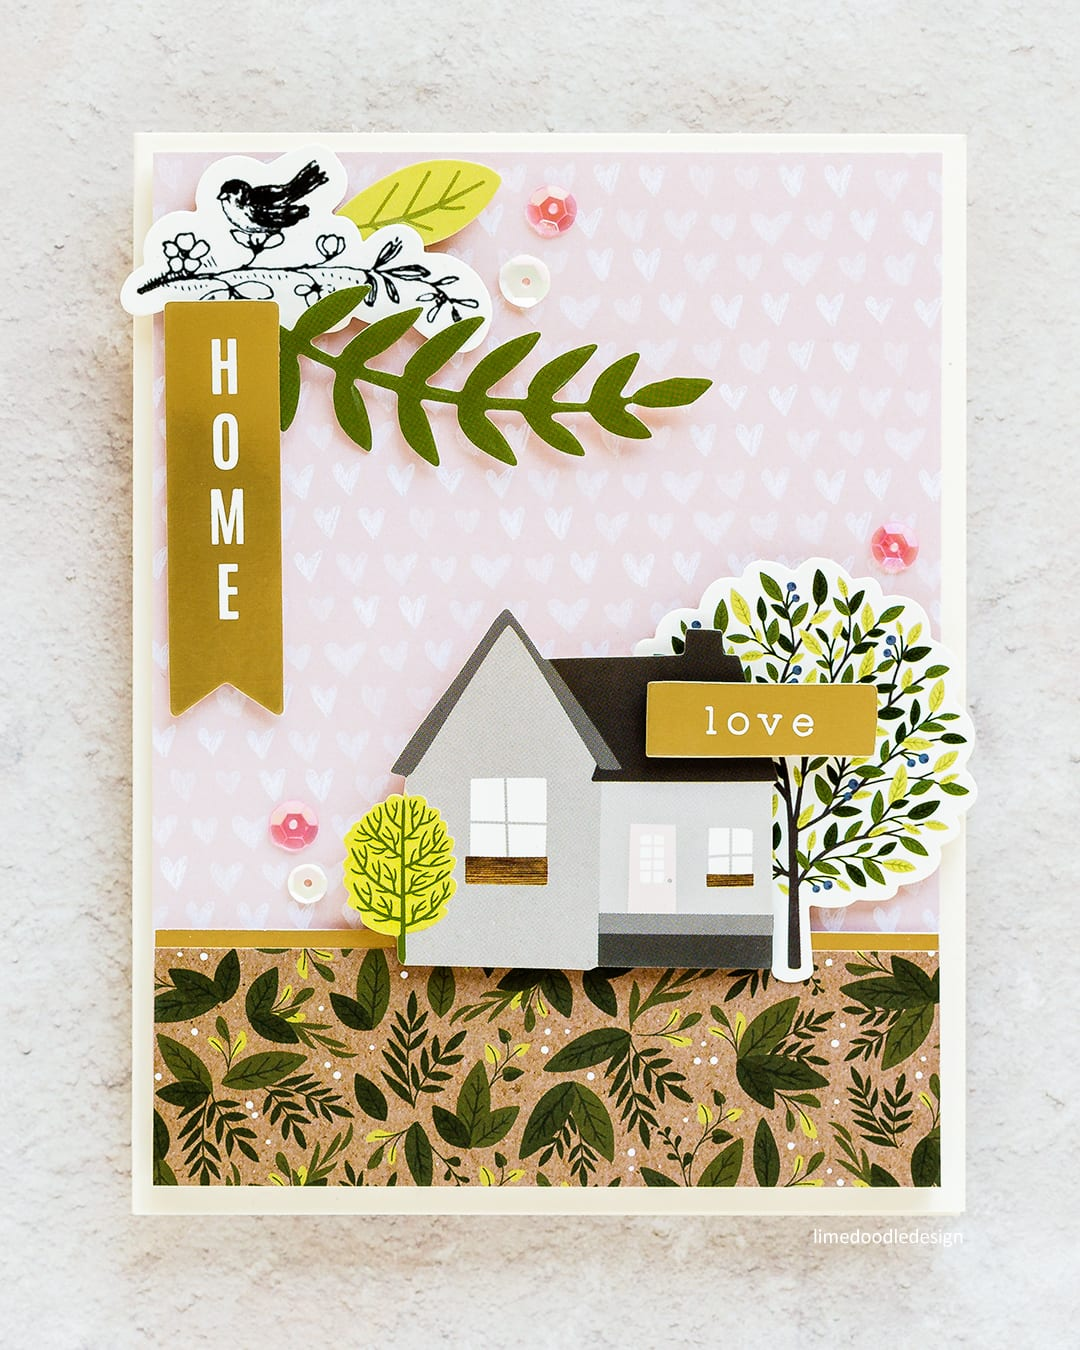 Video tutorial - super quick and easy handmade card and gift box using the patterned papers and stickers from the Simon Says Stamp November Card Kit. Find out more here: http://limedoodledesign.com/2017/10/video-quick-easy-card-gift-box/